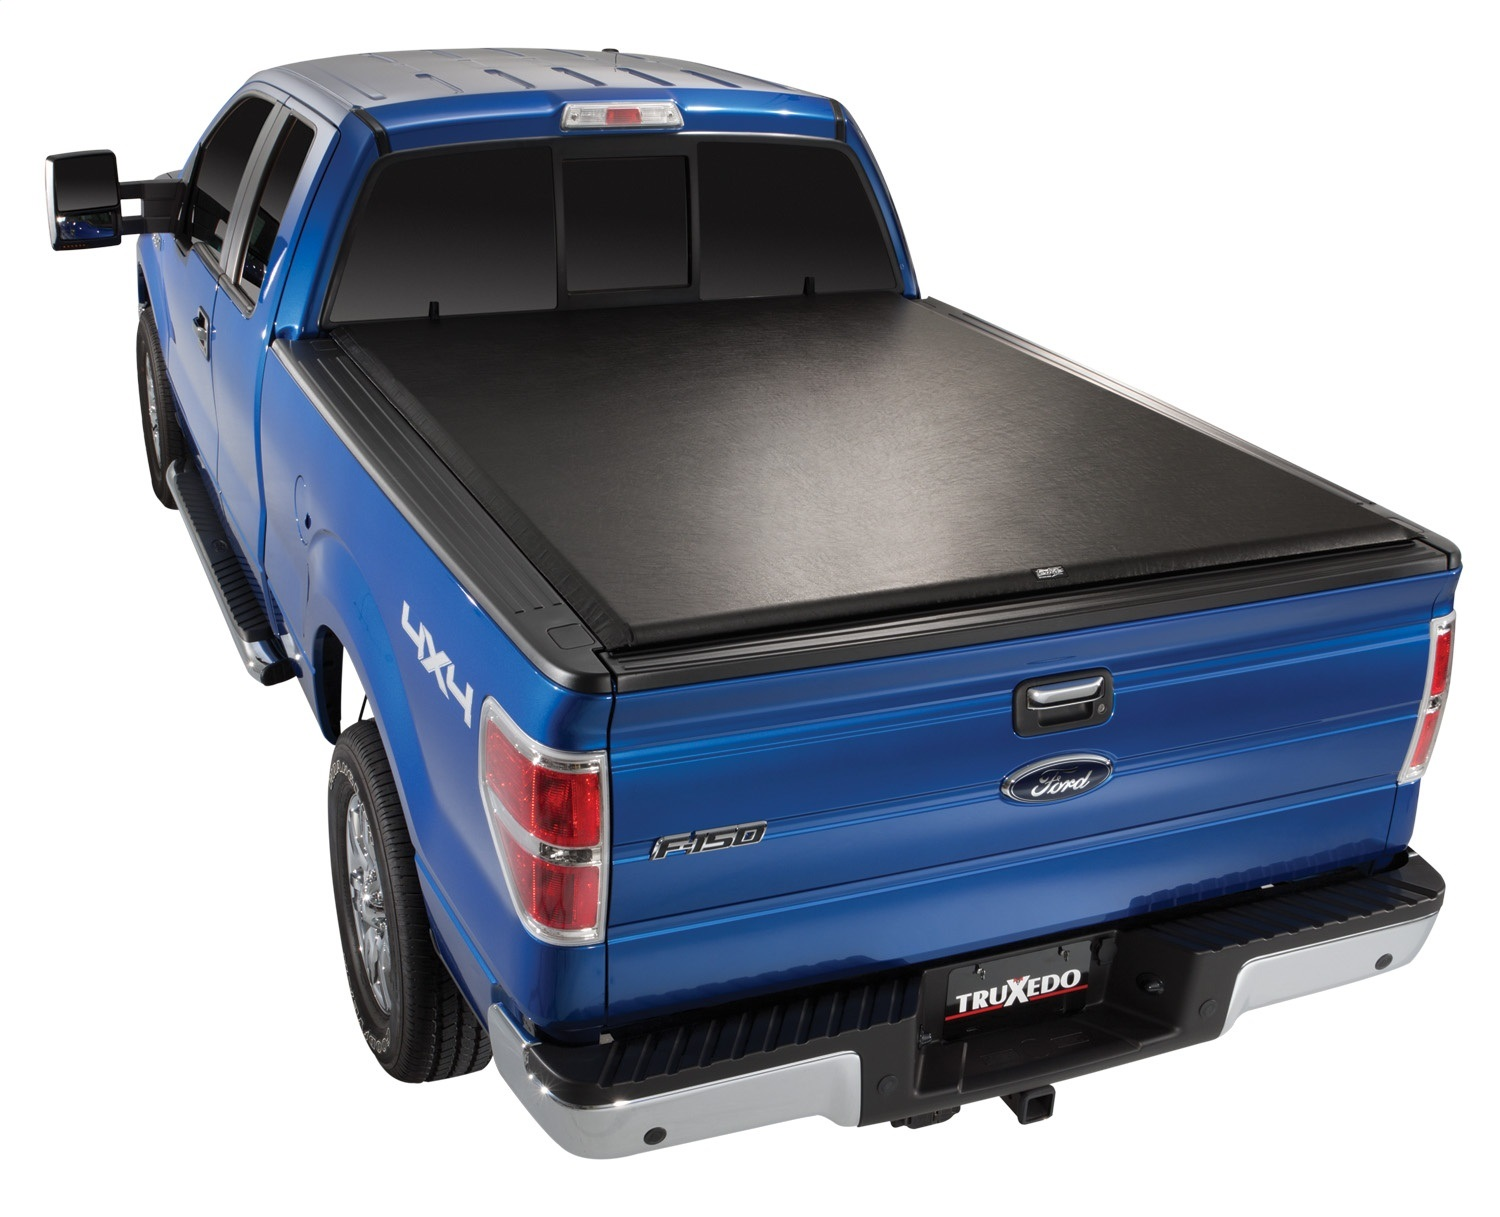 Truxedo (Shur-co) Tonneau Cover (898101)